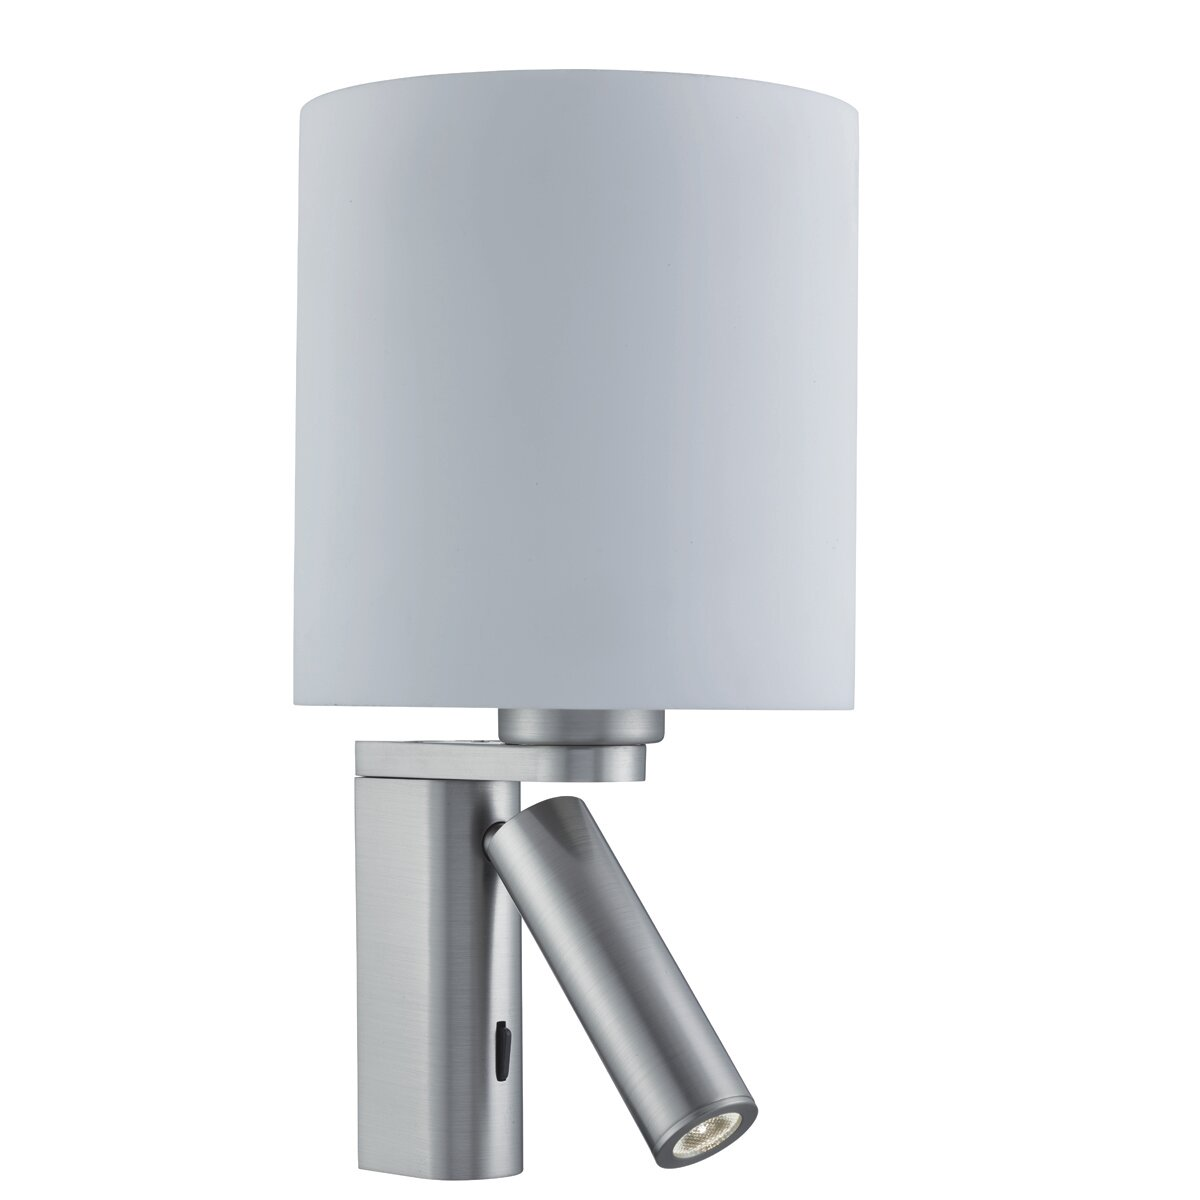 Searchlight Cylinder Arm LED 1 Light Up and Downlight | Wayfair.co.uk